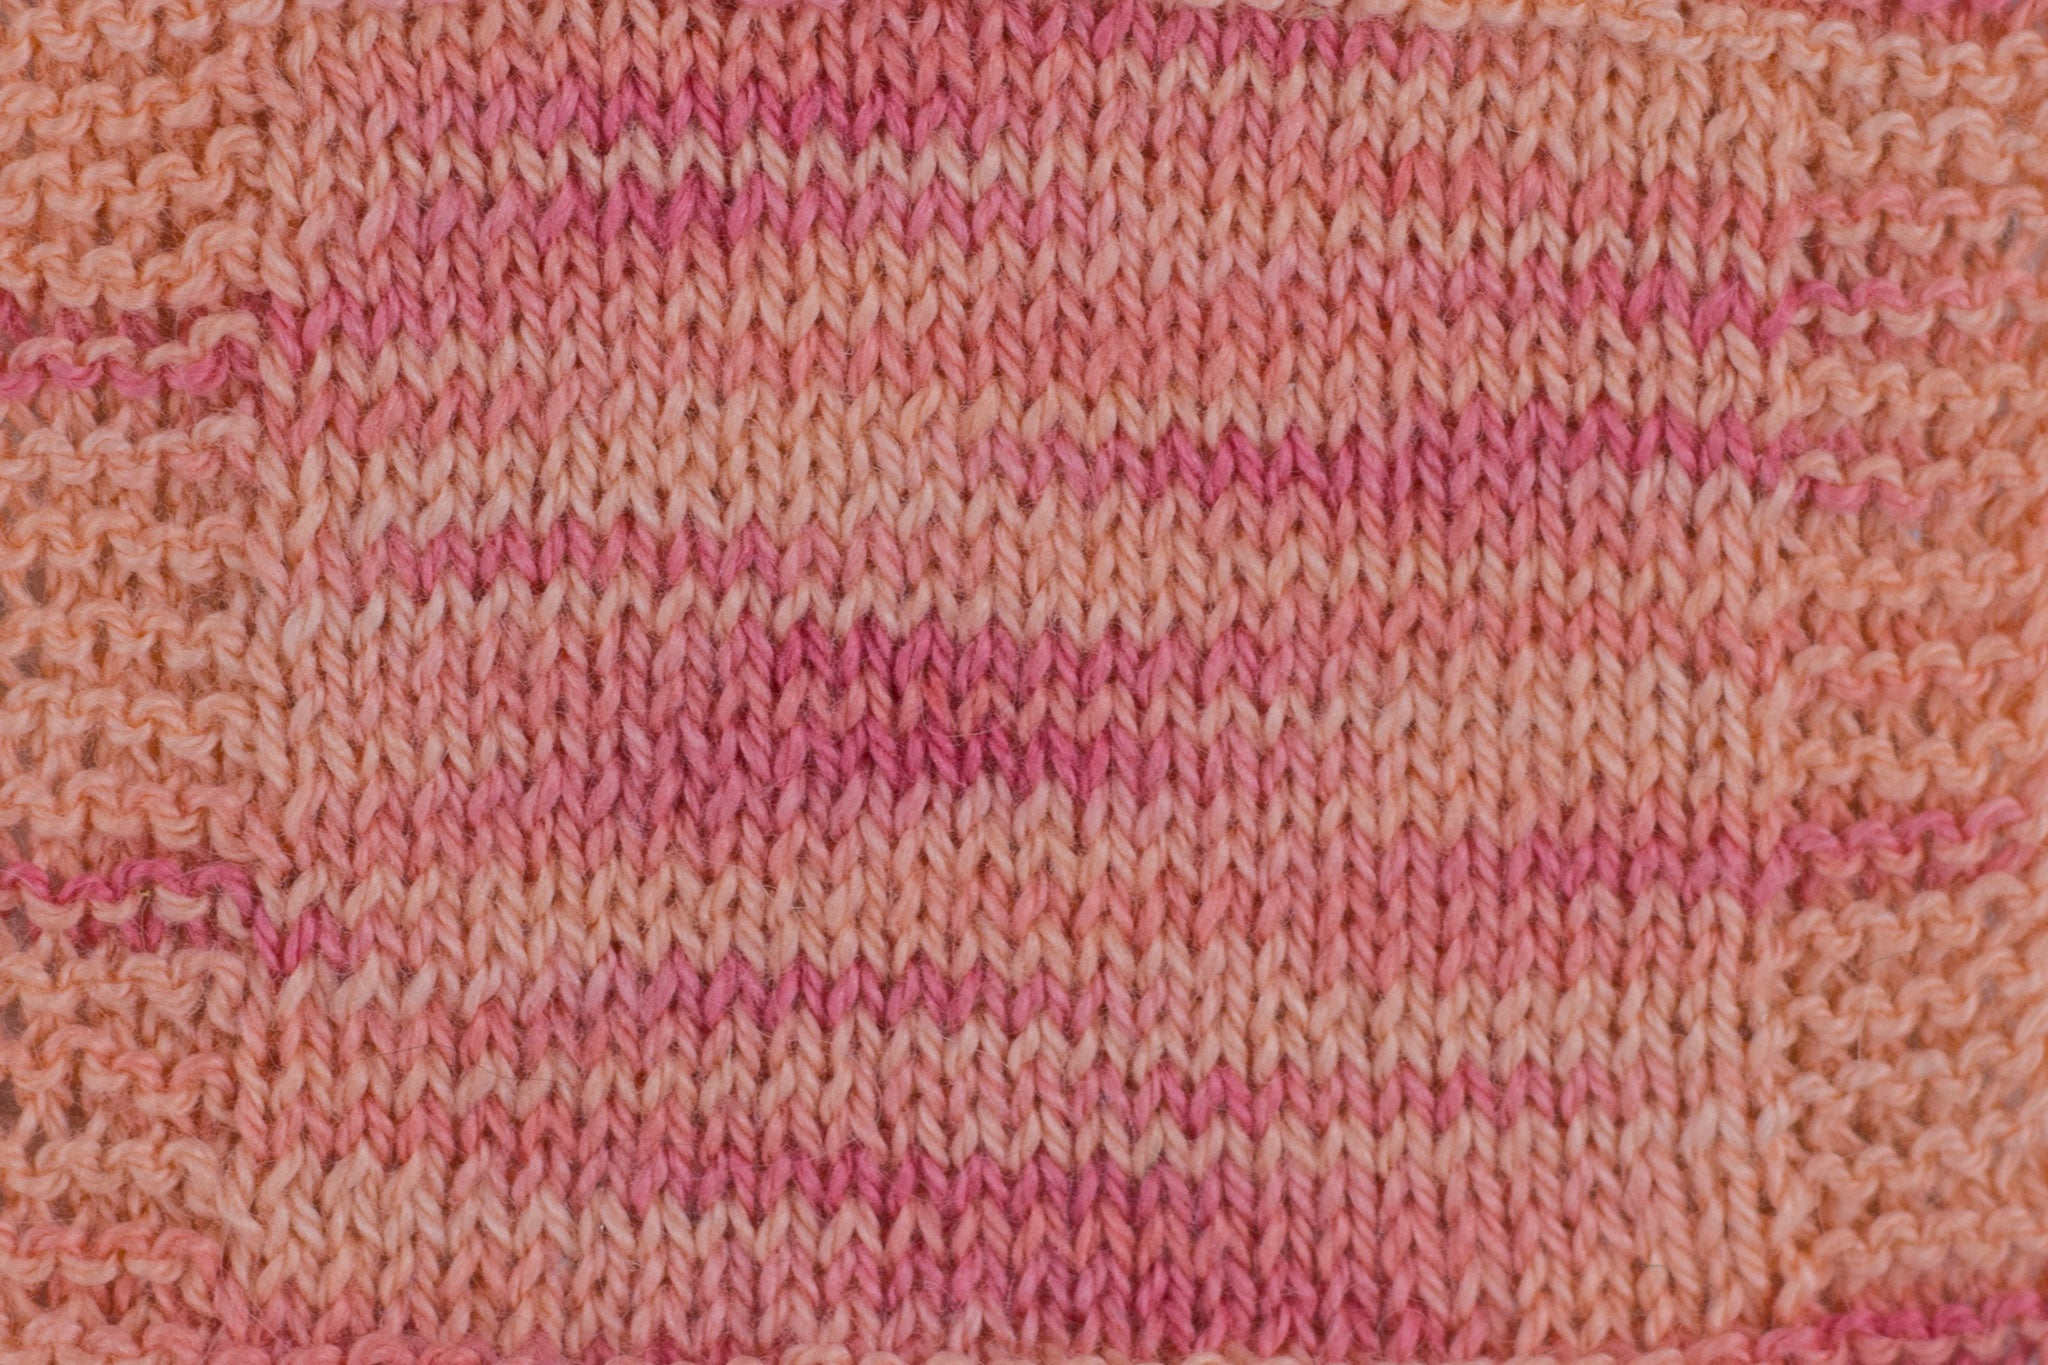 Organic & Fair Trade Cotton Yarn- Pink swatch